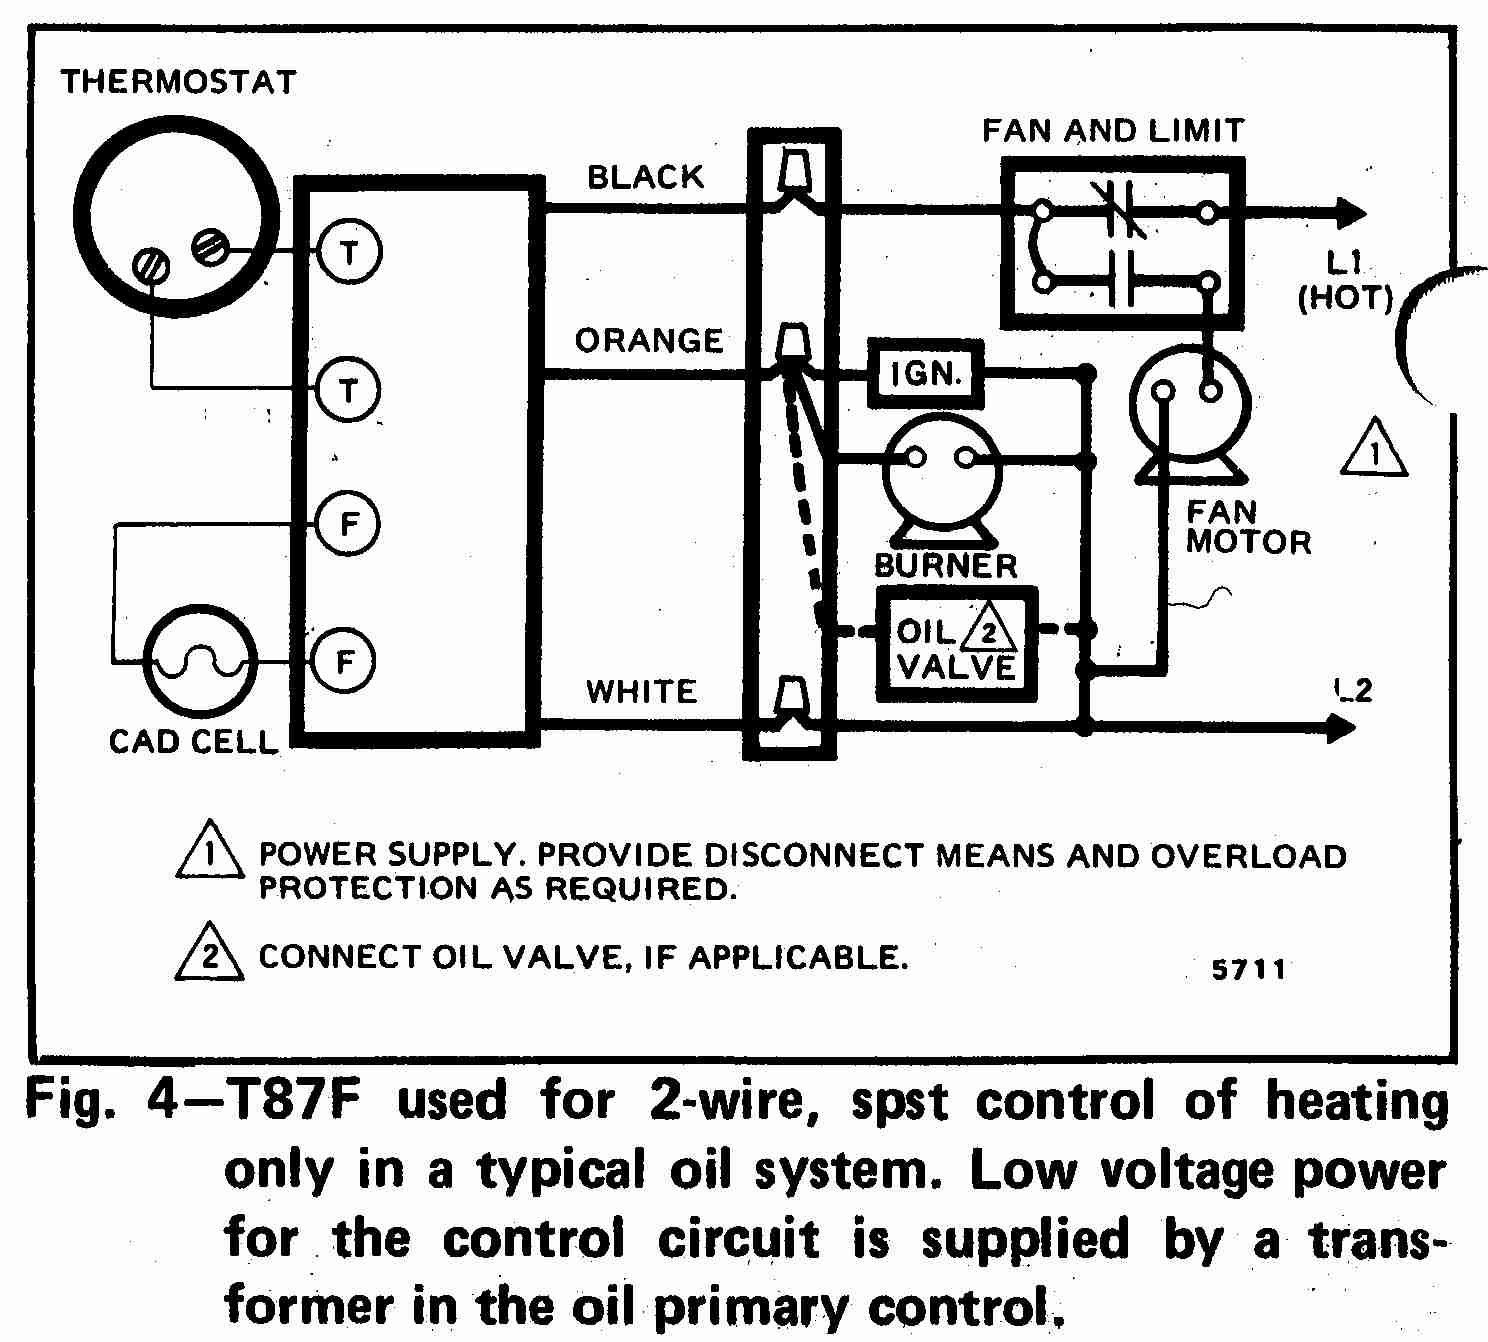 New Wiring Diagram For Solid Fuel Central Heating System Diagram Diagramtemplate Diagramsample